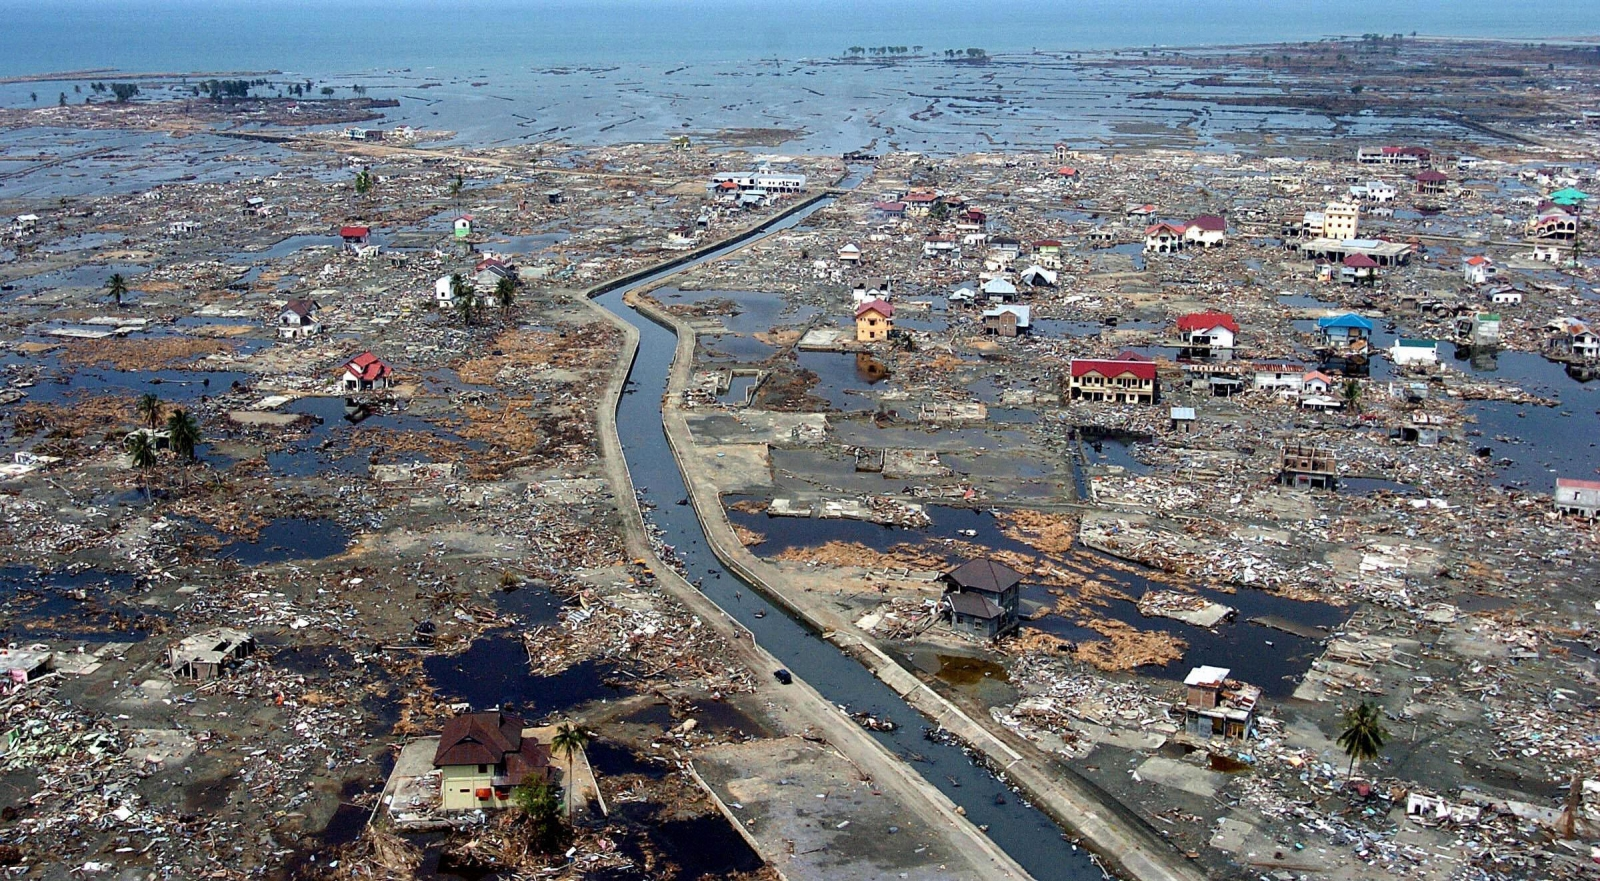 2004 Indian Ocean earthquake and tsunami Countries affected India Indonesia Malaysia Maldives Myanmar Somalia Sri Lanka Thailand Indirect Finland Norway